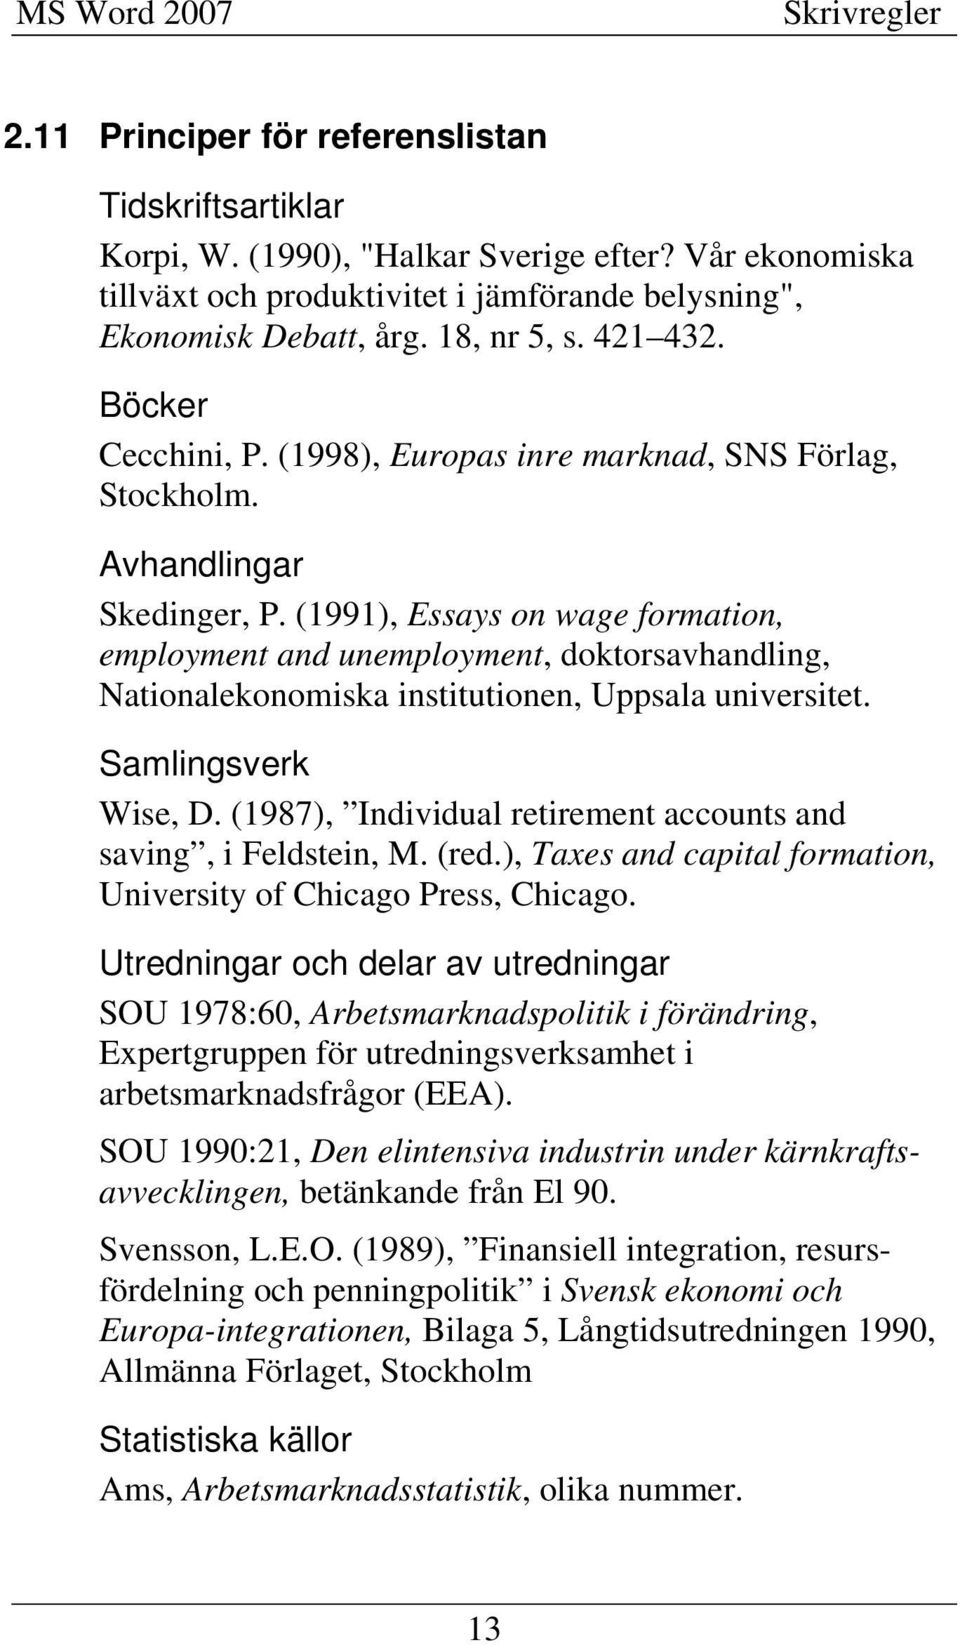 (1991), Essays on wage formation, employment and unemployment, doktorsavhandling, Nationalekonomiska institutionen, Uppsala universitet. Samlingsverk Wise, D.